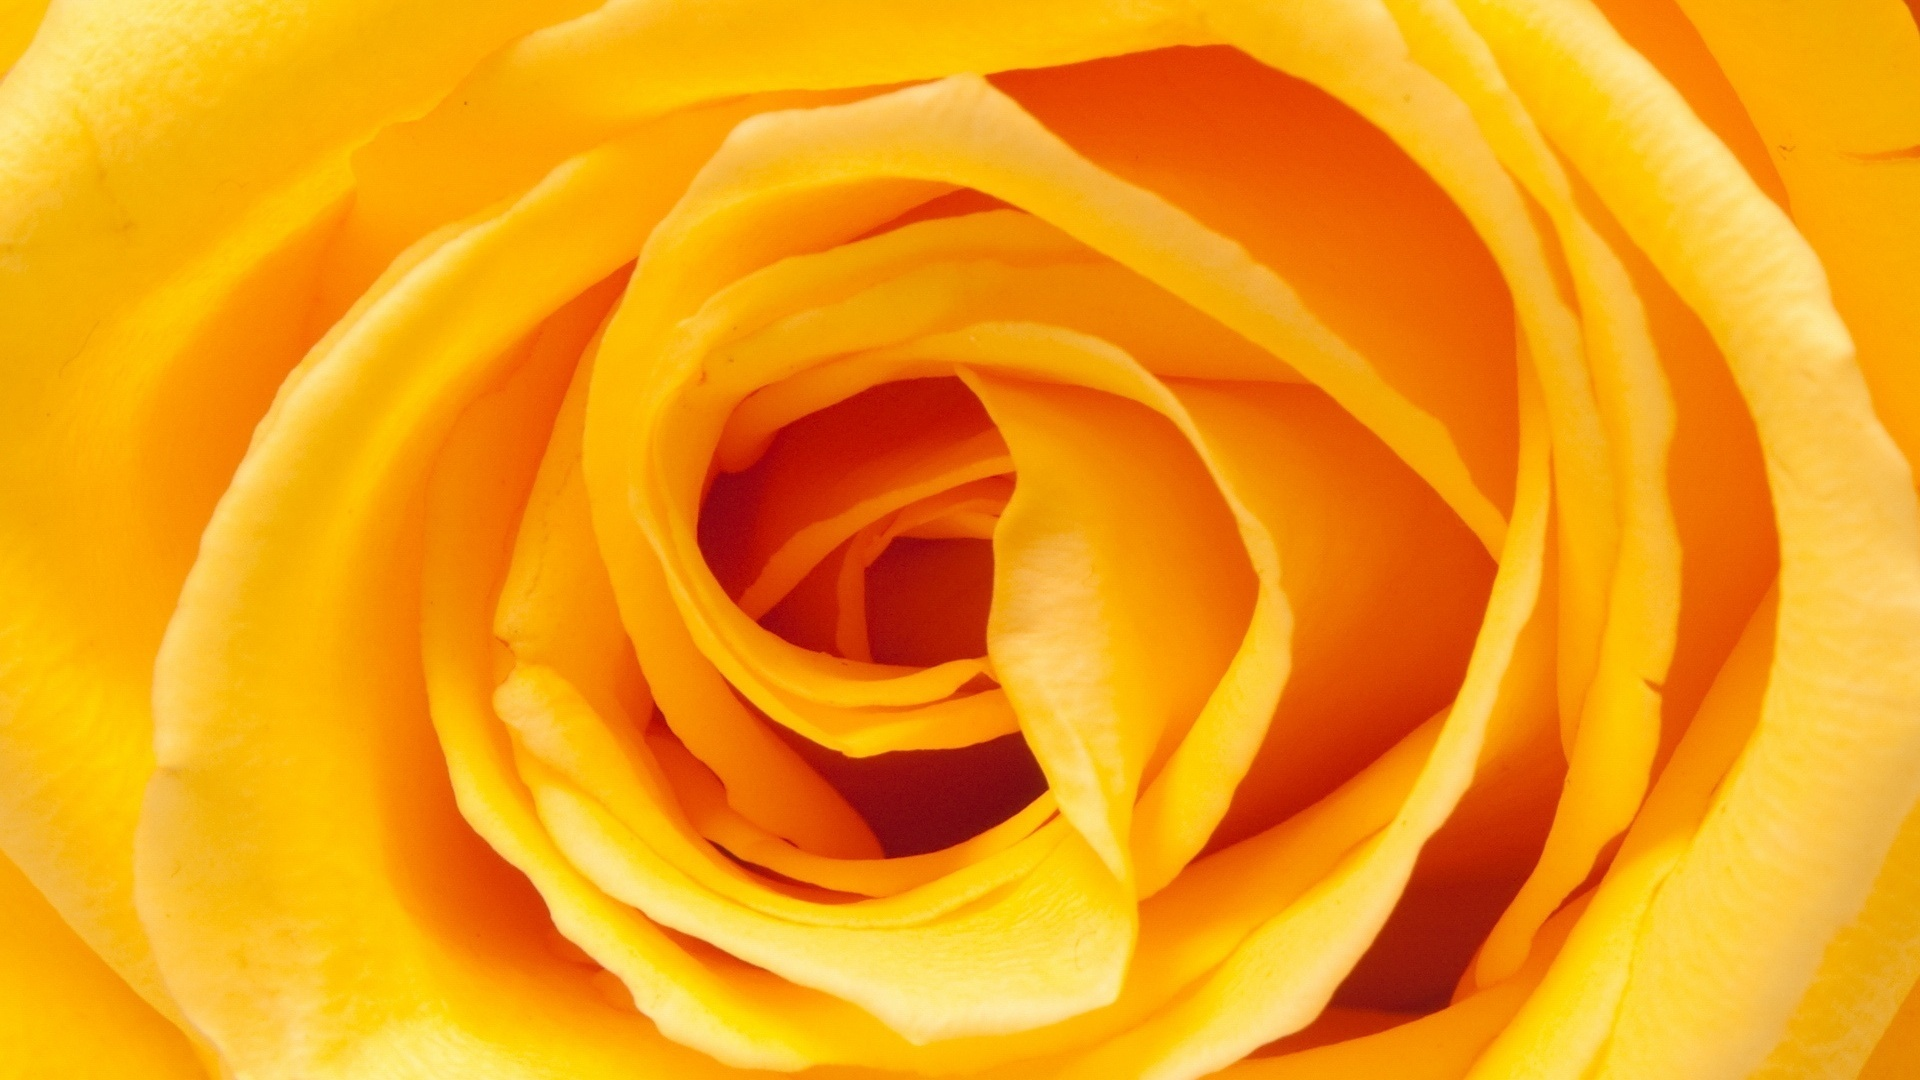 Yellow Roses Wallpaper - WallpaperSafari